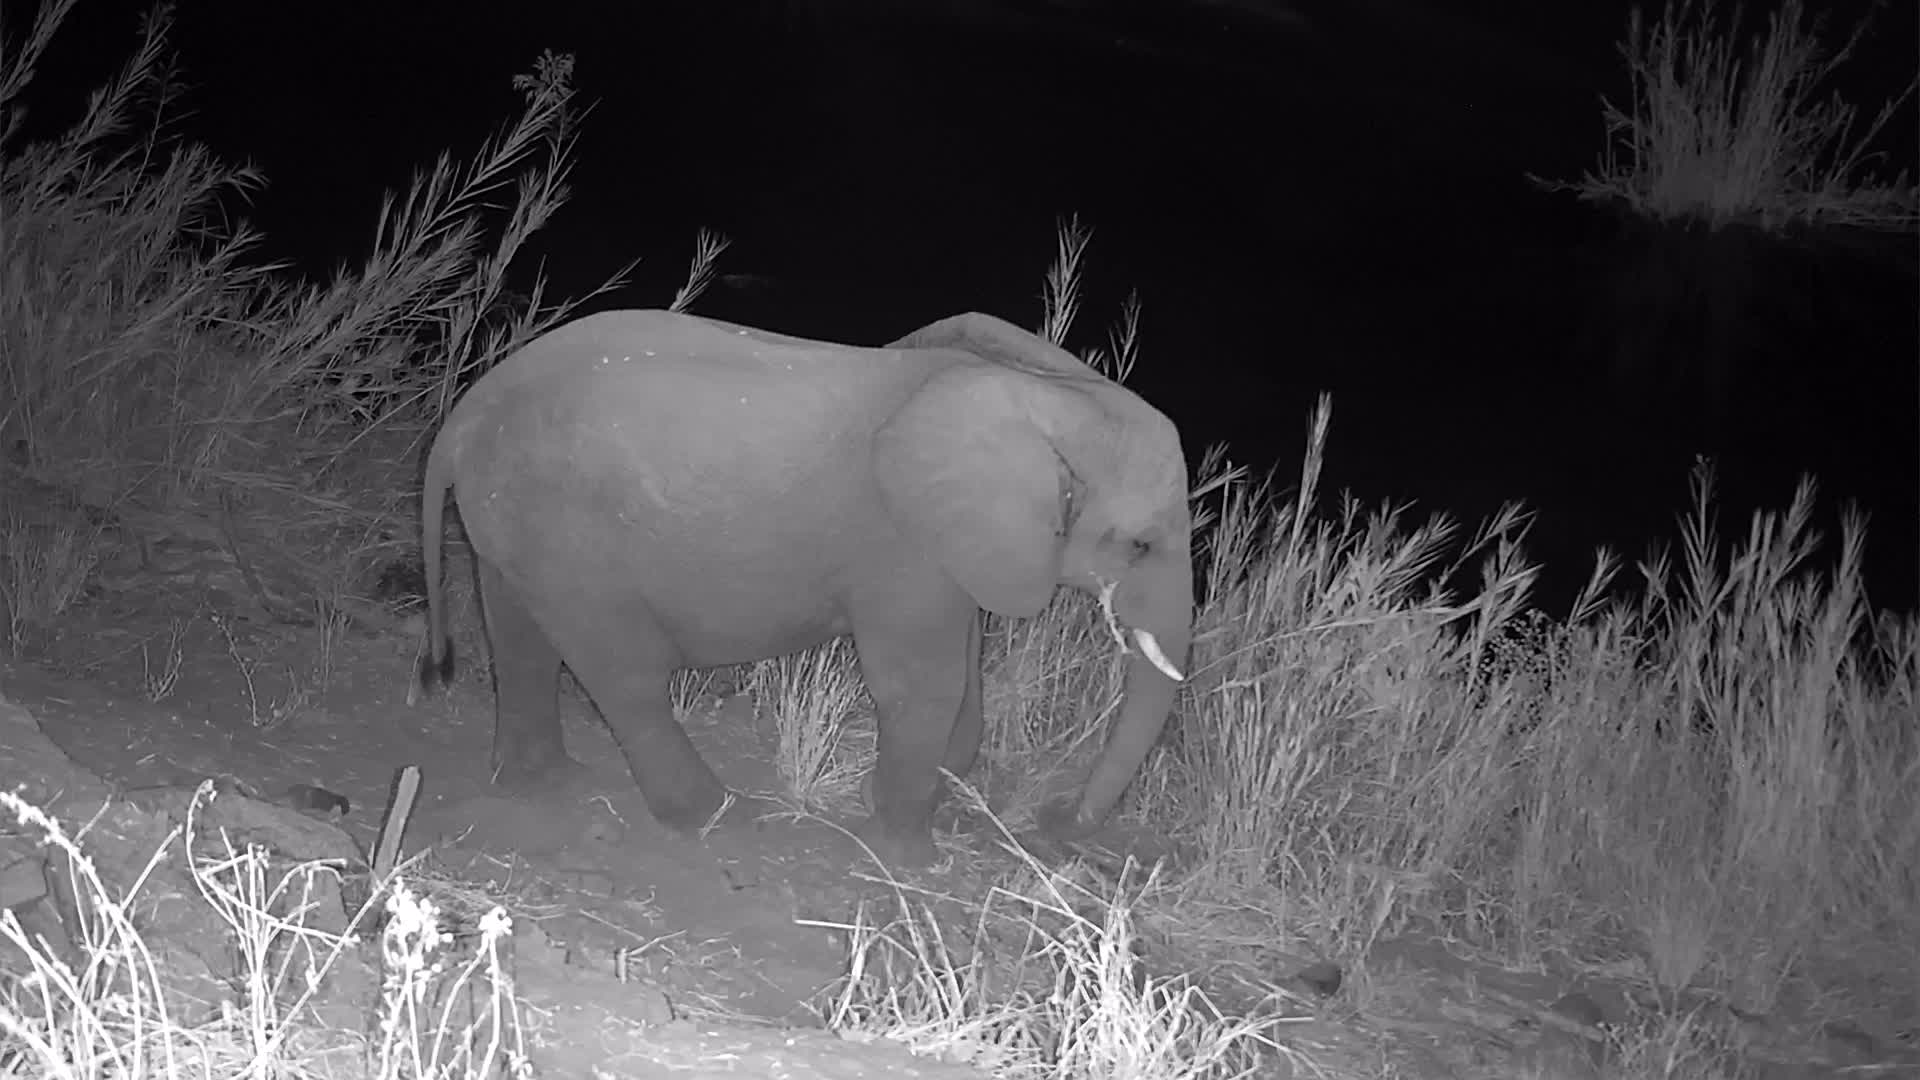 VIDEO: Elephant enjoys the grass at the path under the camera